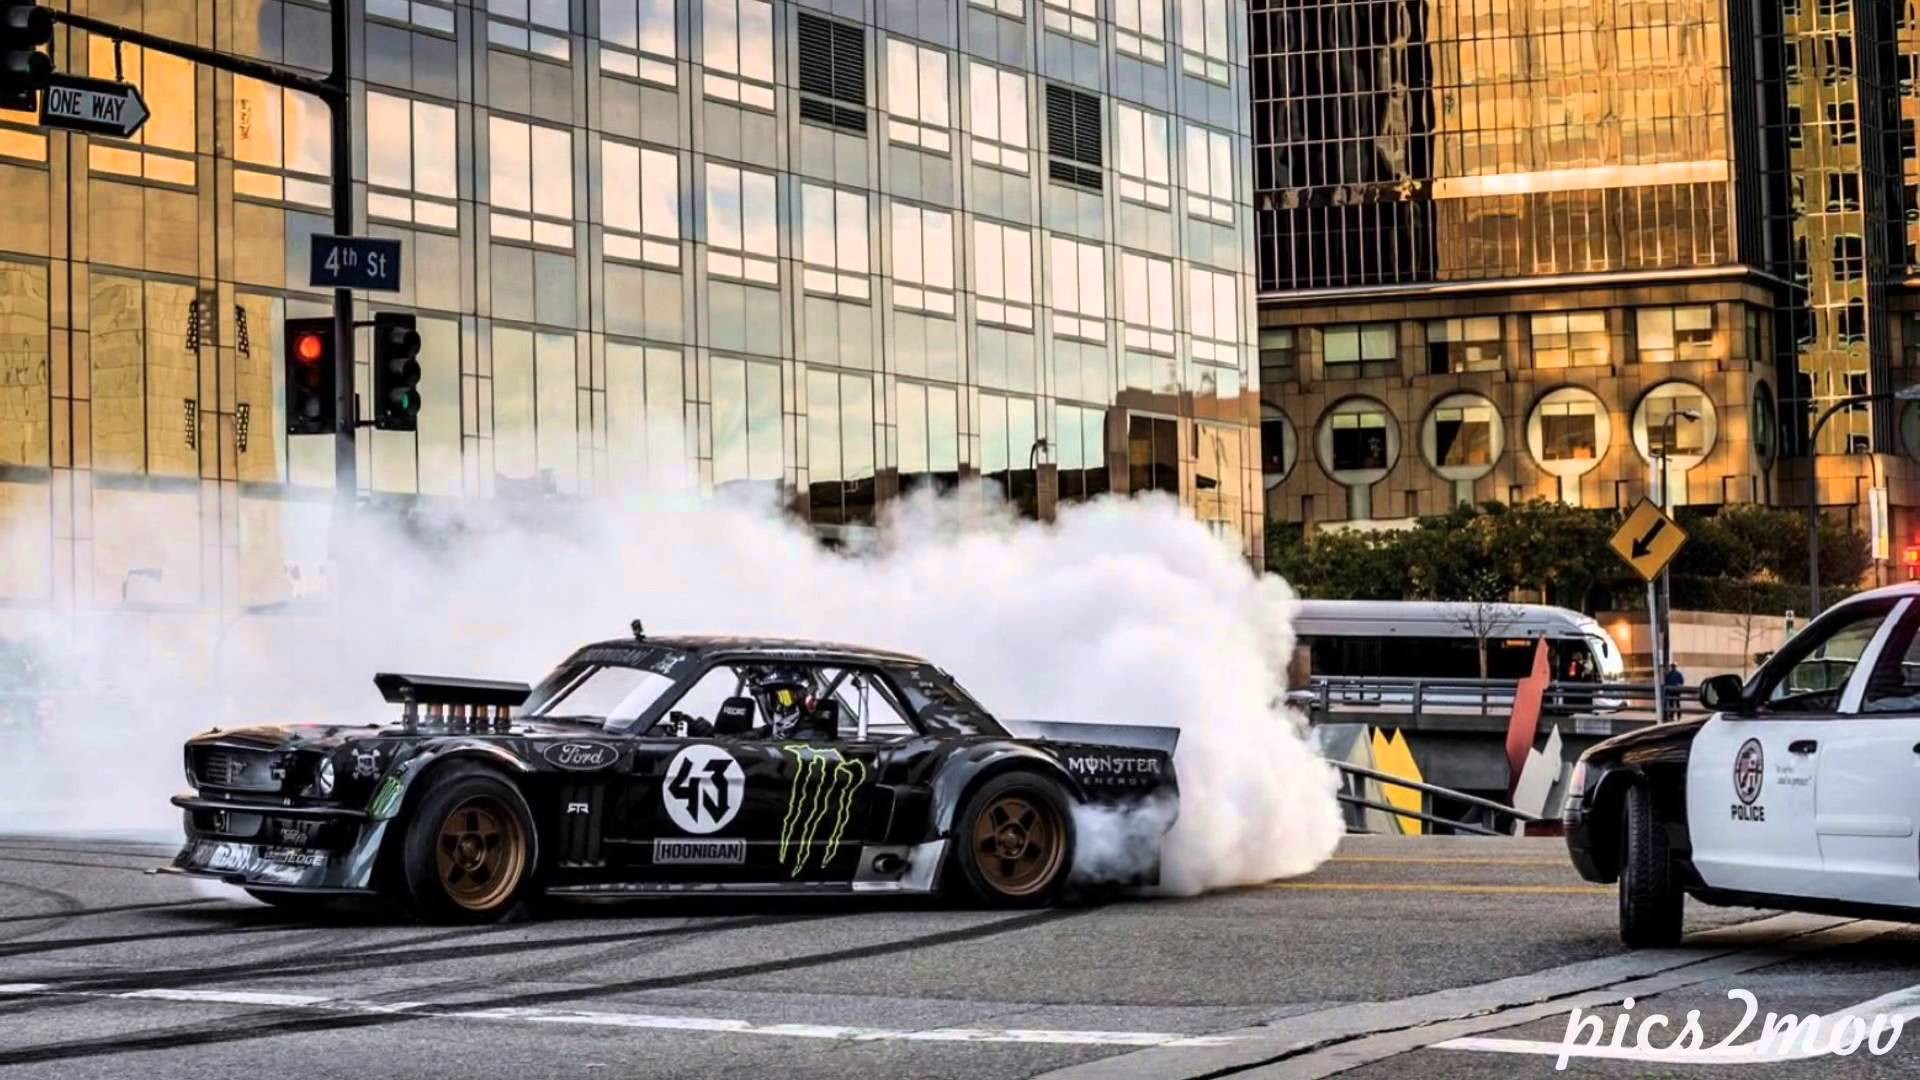 Wallpaper Ken Block 2018 47 Pictures